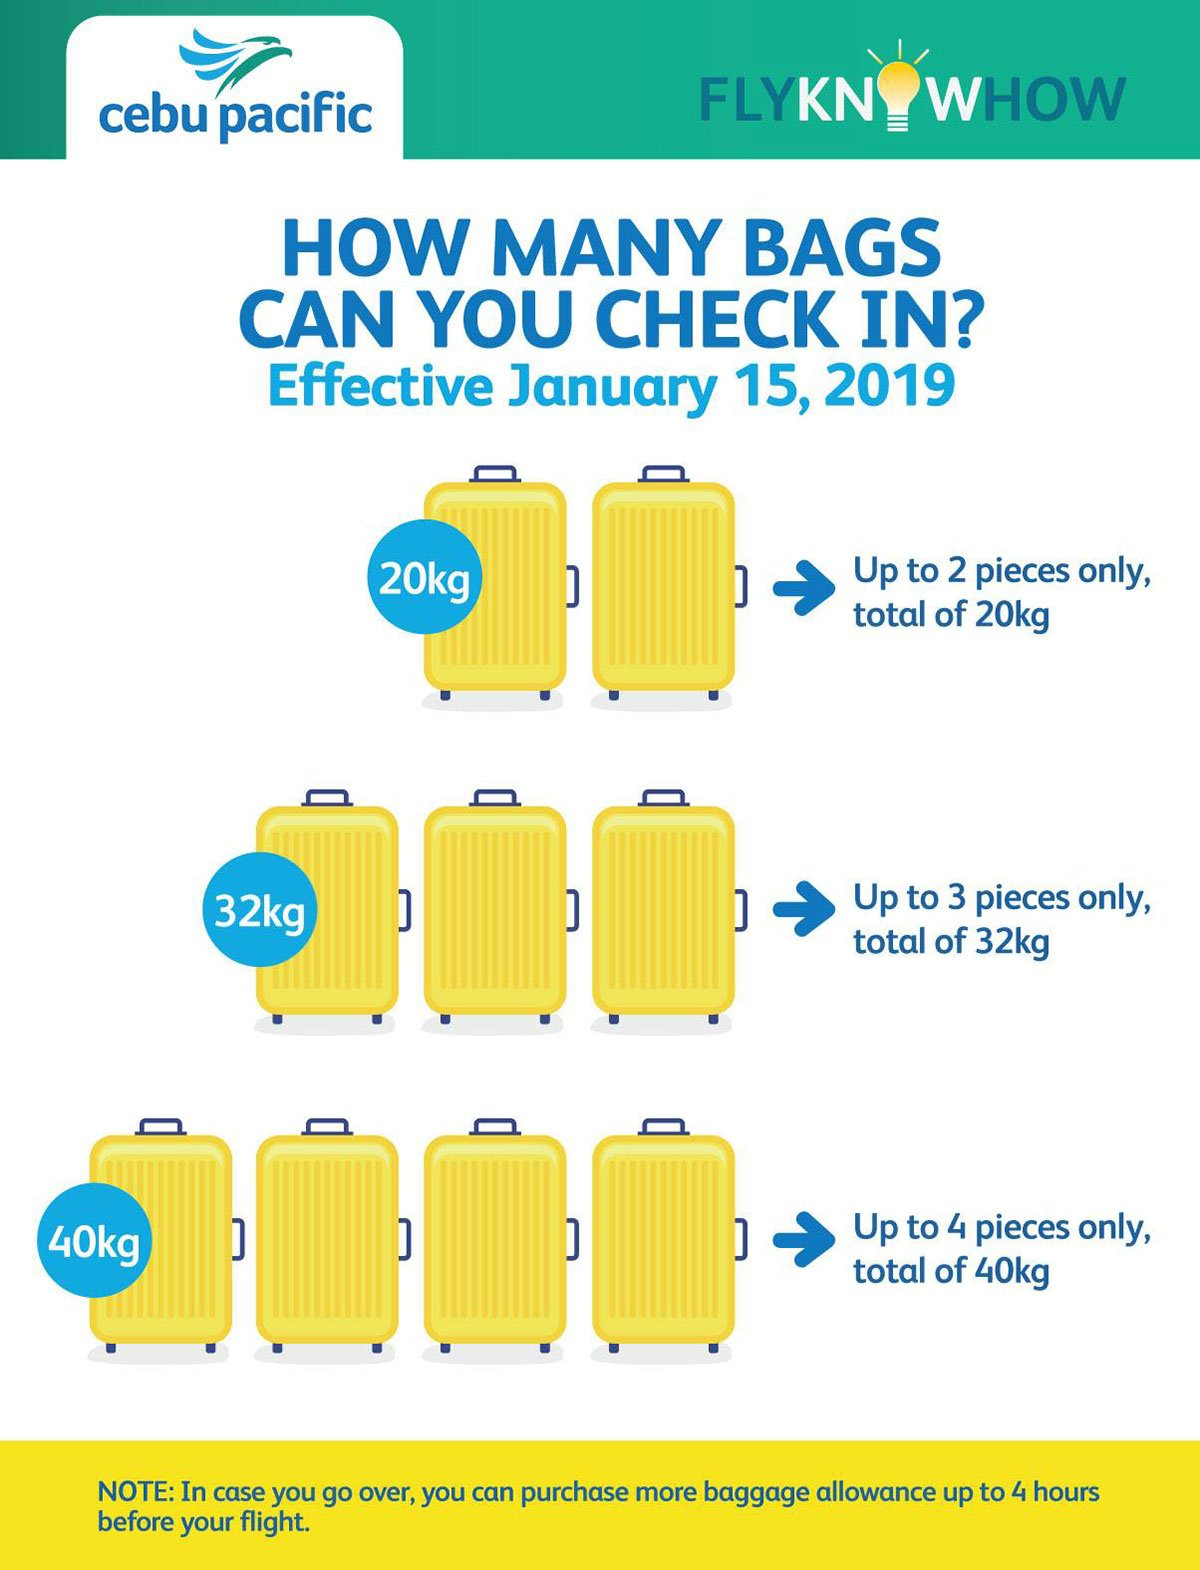 Cebu Pacific New Baggage Policy